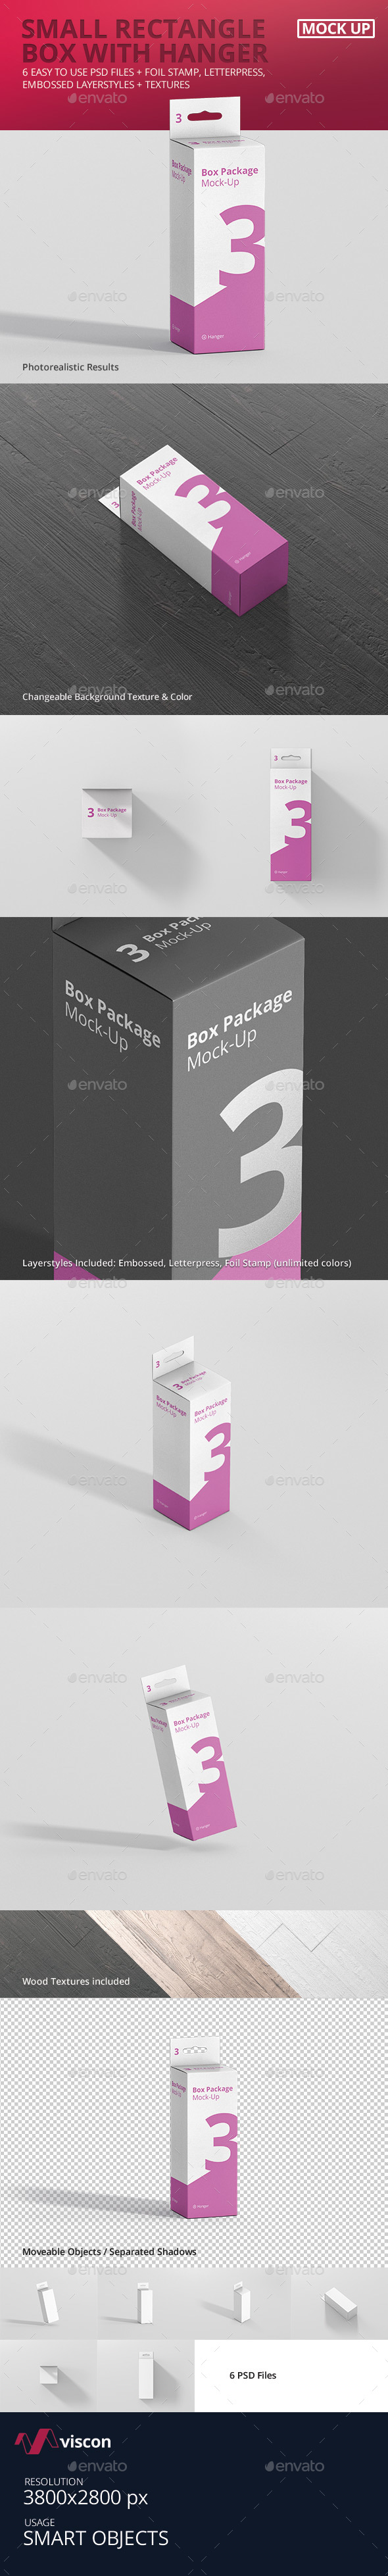 Package Box Mock-Up - Small Rectangle with Hanger